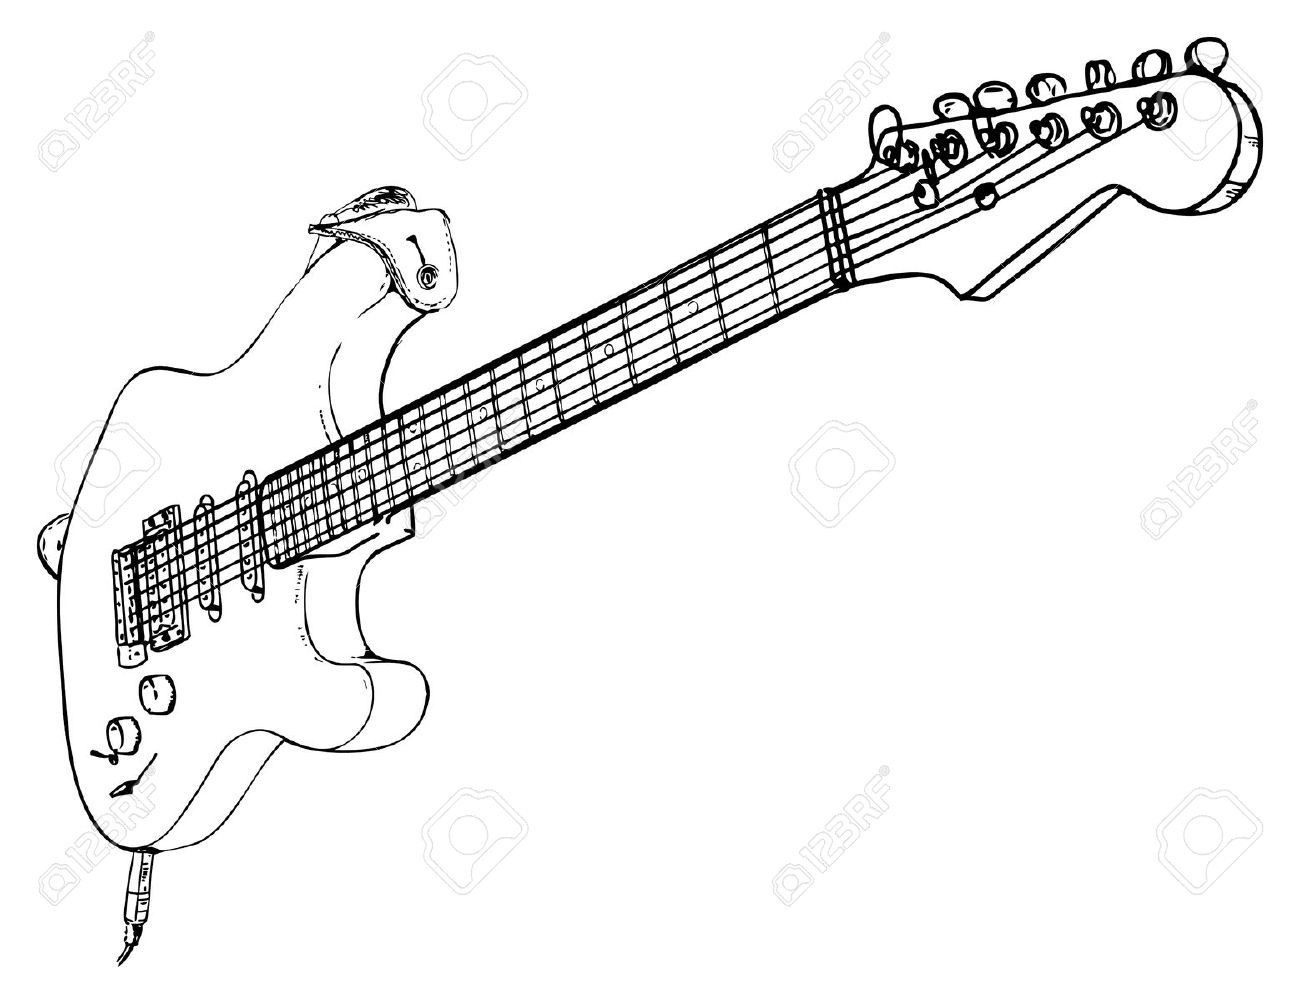 Electric Guitar Sketch